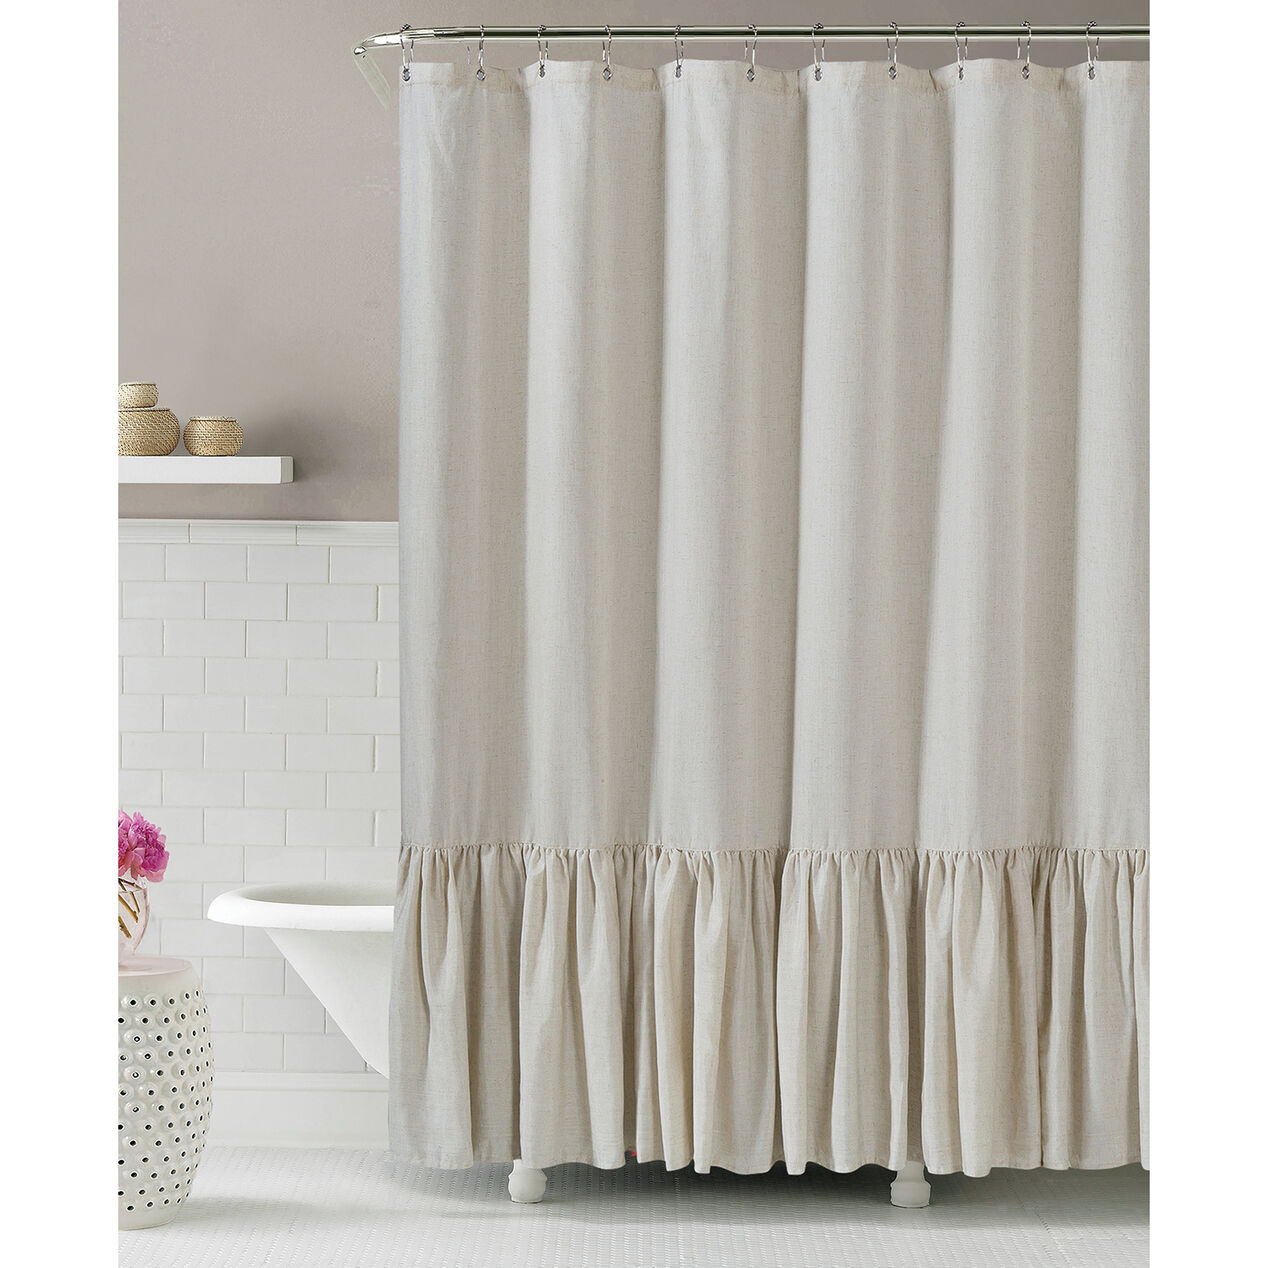 Lifestyles Shower Curtain Retro Chic Curtain Menzilperde Net